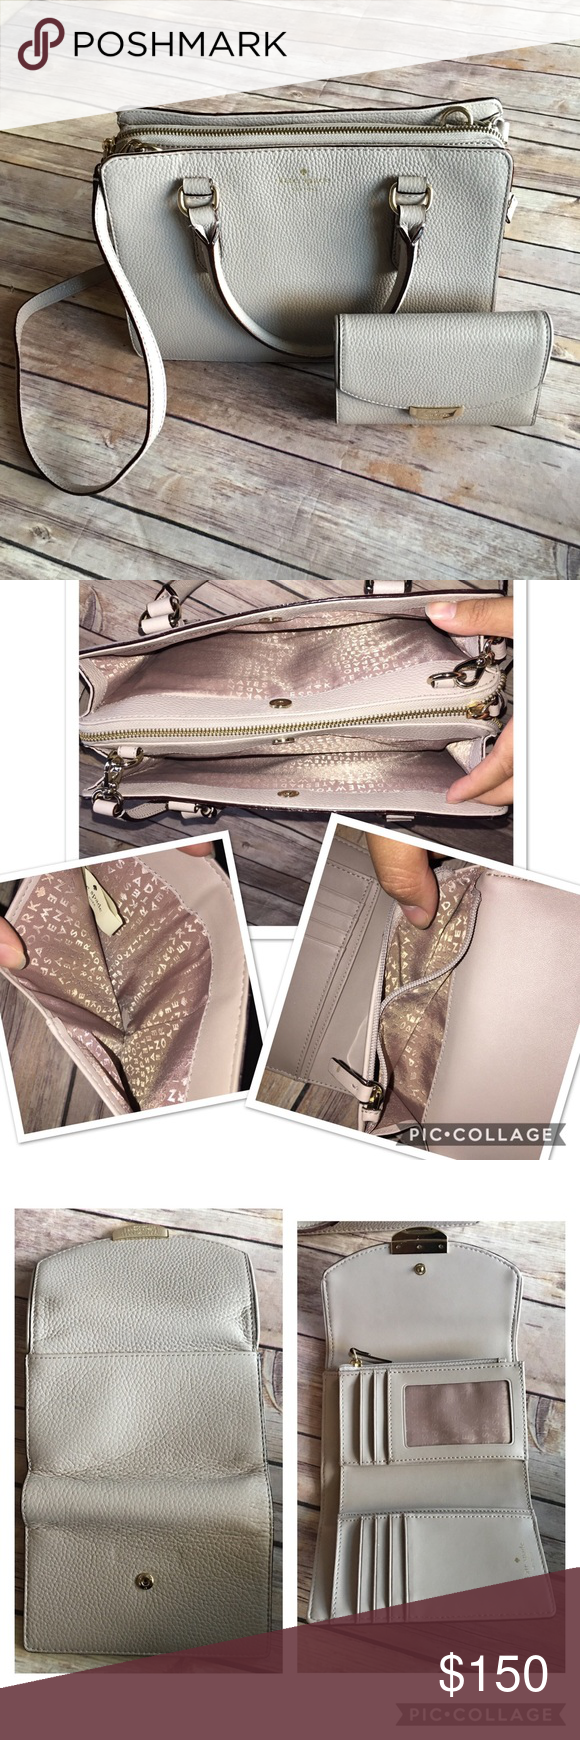 b6dc0a22c3 I just added this listing on Poshmark  Kate Spade Lise Mulberry Street Bag